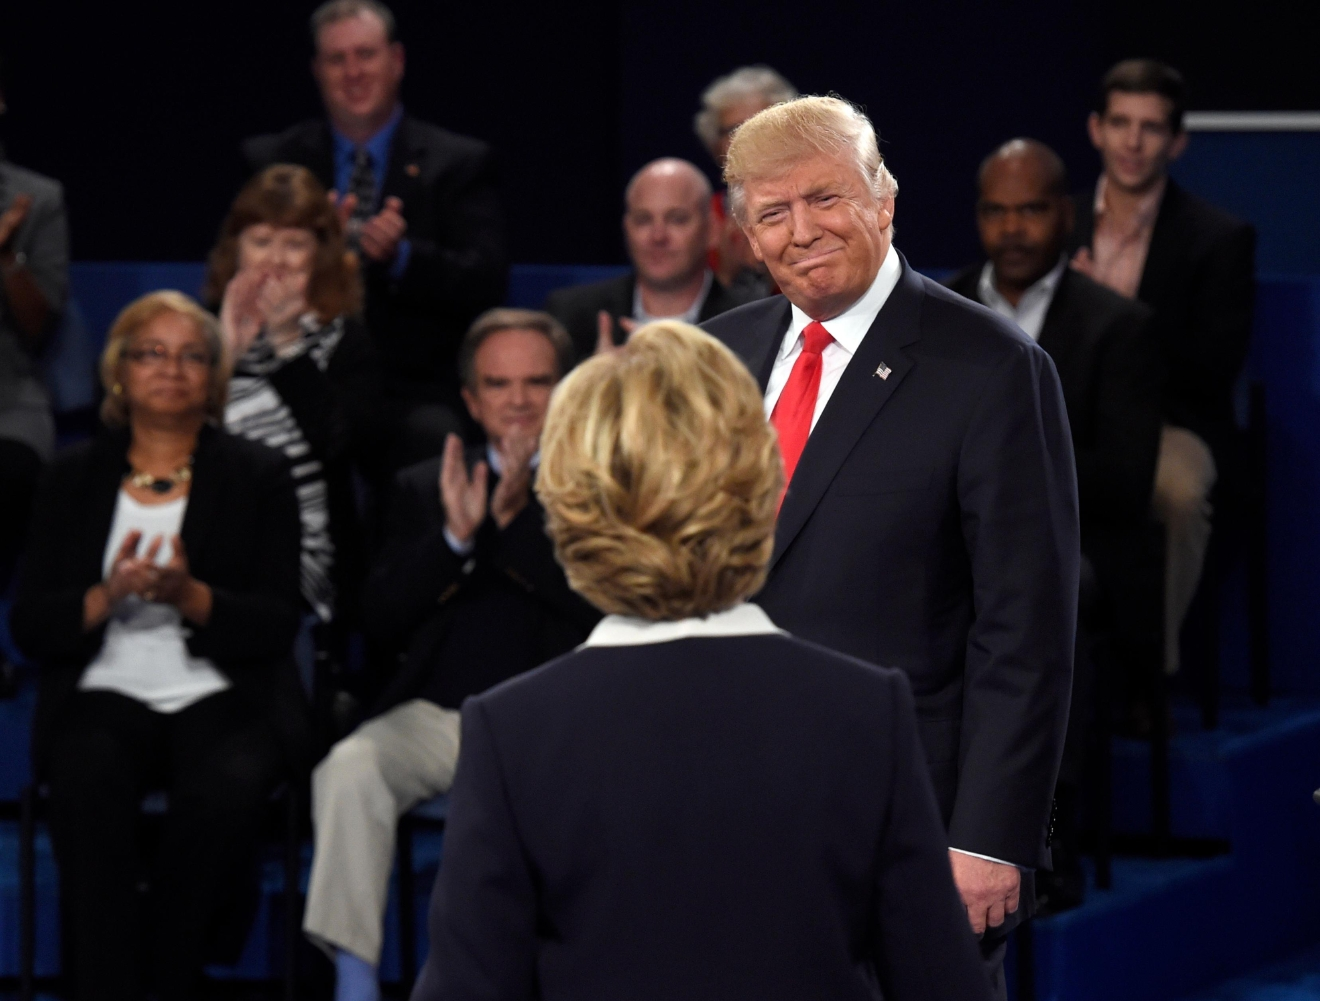 Republican presidential nominee Donald Trump, right, greets  Democratic presidential nominee Hillary Clinton before the second presidential debate at Washington University in St. Louis, Sunday, Oct. 9, 2016. (Saul Loeb/Pool via AP)